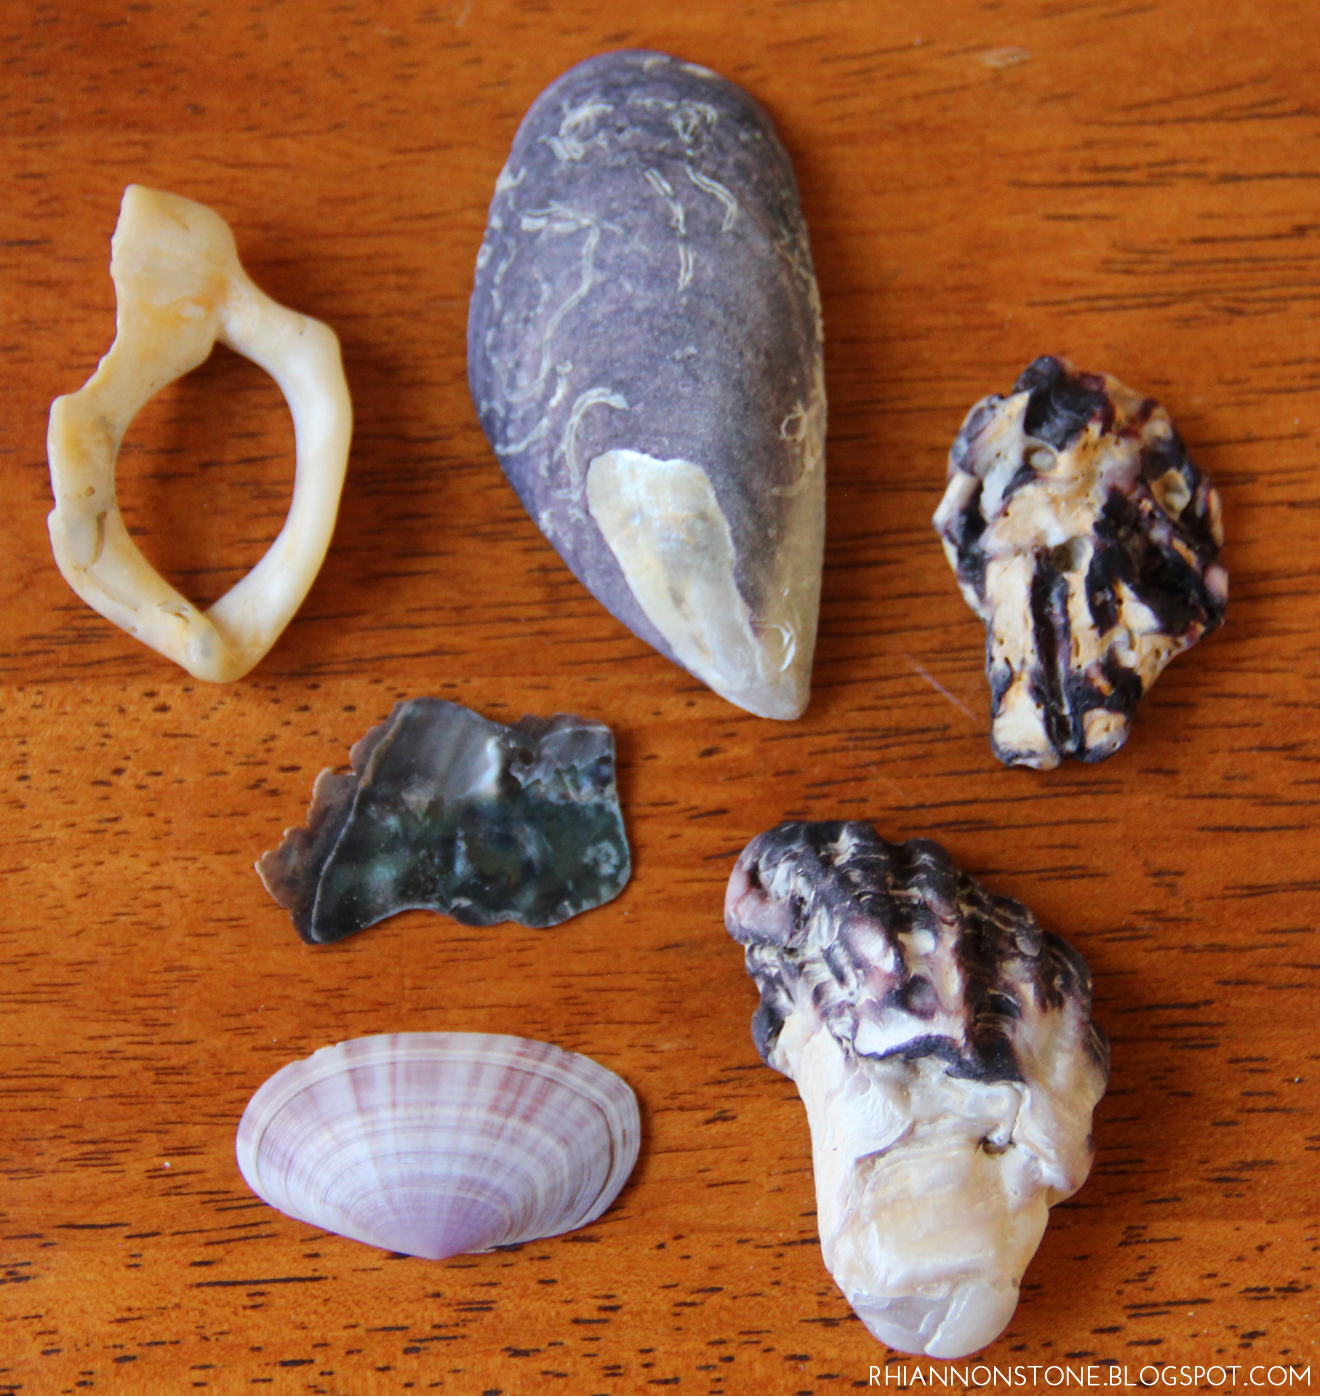 Shells from Takapuna Beach, Auckland